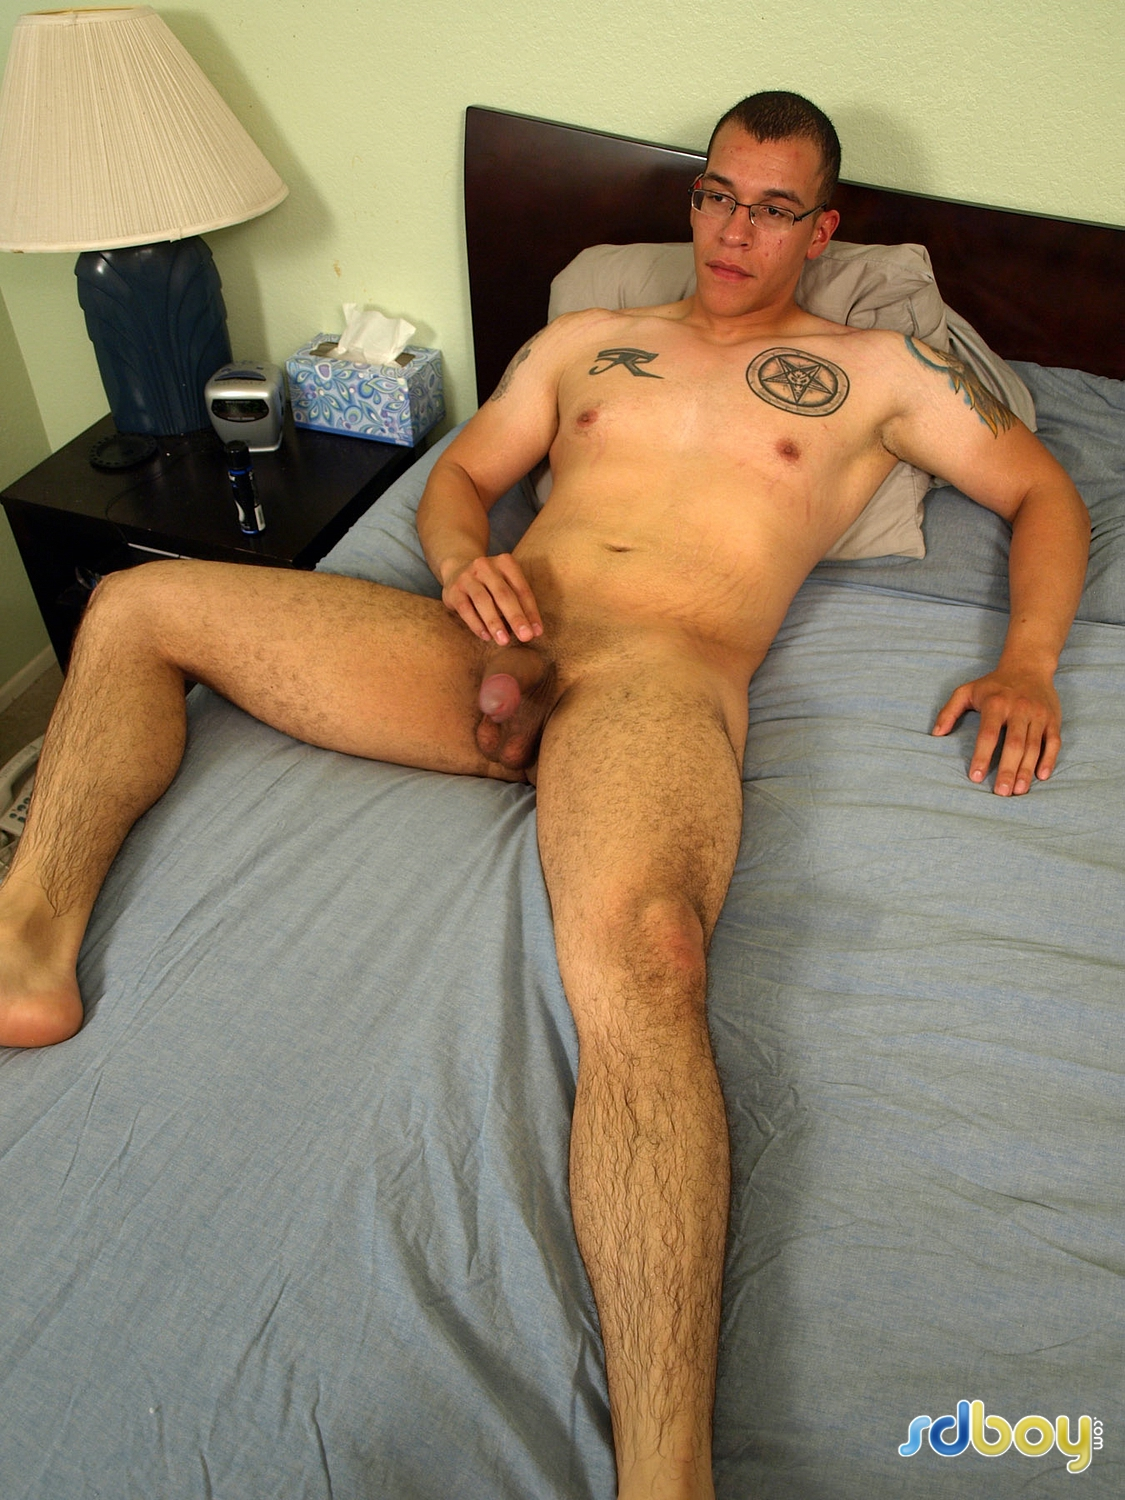 SD Boy Ray Sosa Big Uncut Cock Latino Marine Masturbating Amateur Gay Porn 07 Amateur Gay Latino Marine Shows His Tatts and Jerks His Uncut Cock